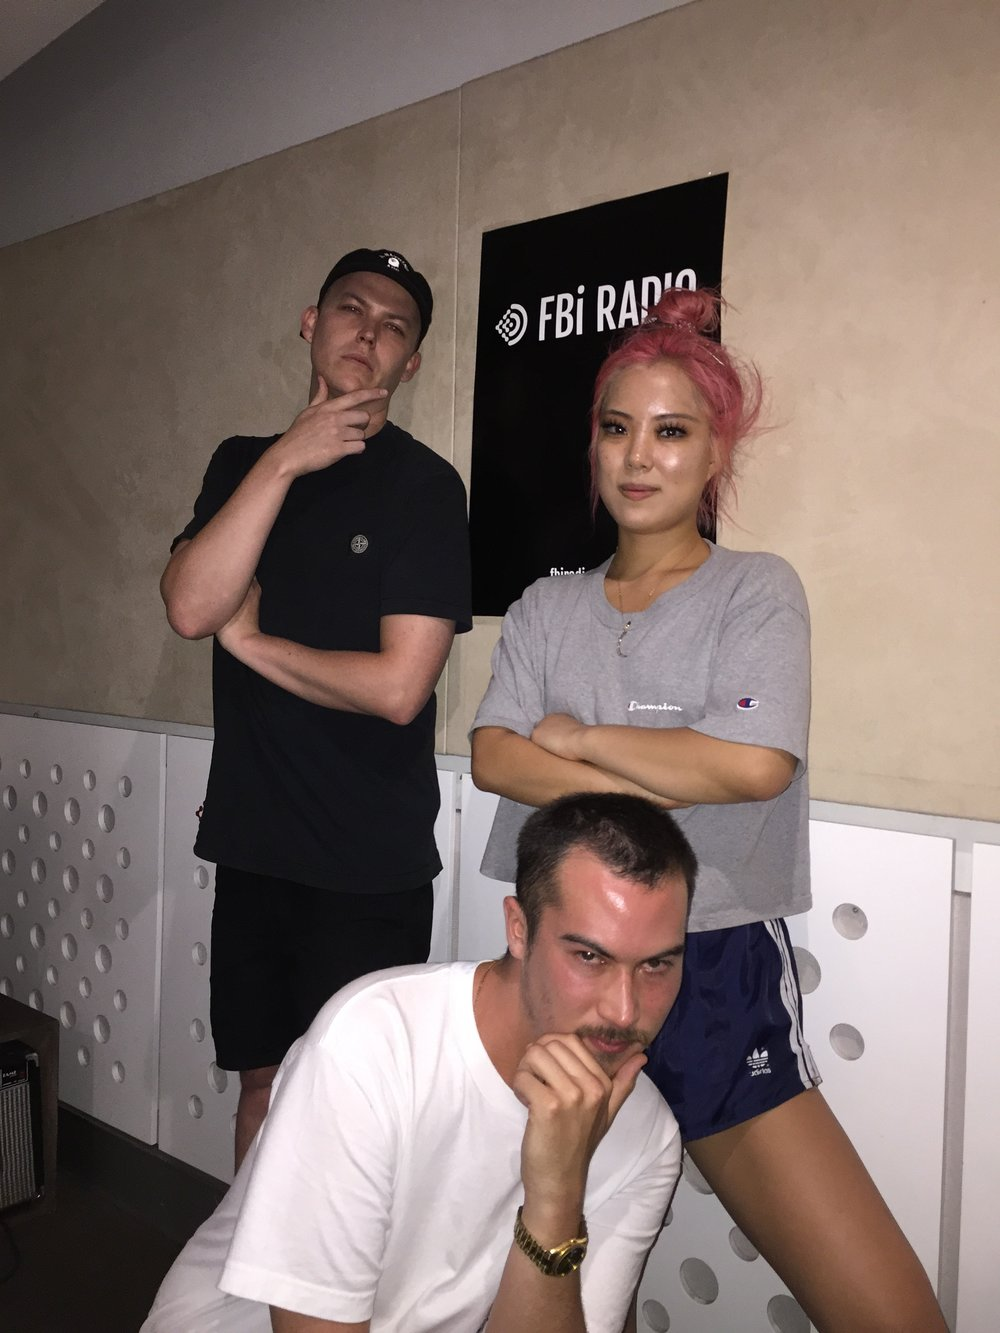 """December 2016 - Officially our first ever show as """" Midnight with Swiss Dank """" on FBi Radio 💕 Having a radio show has been a dream of mine, and to do it with two of my m8s is unreal."""